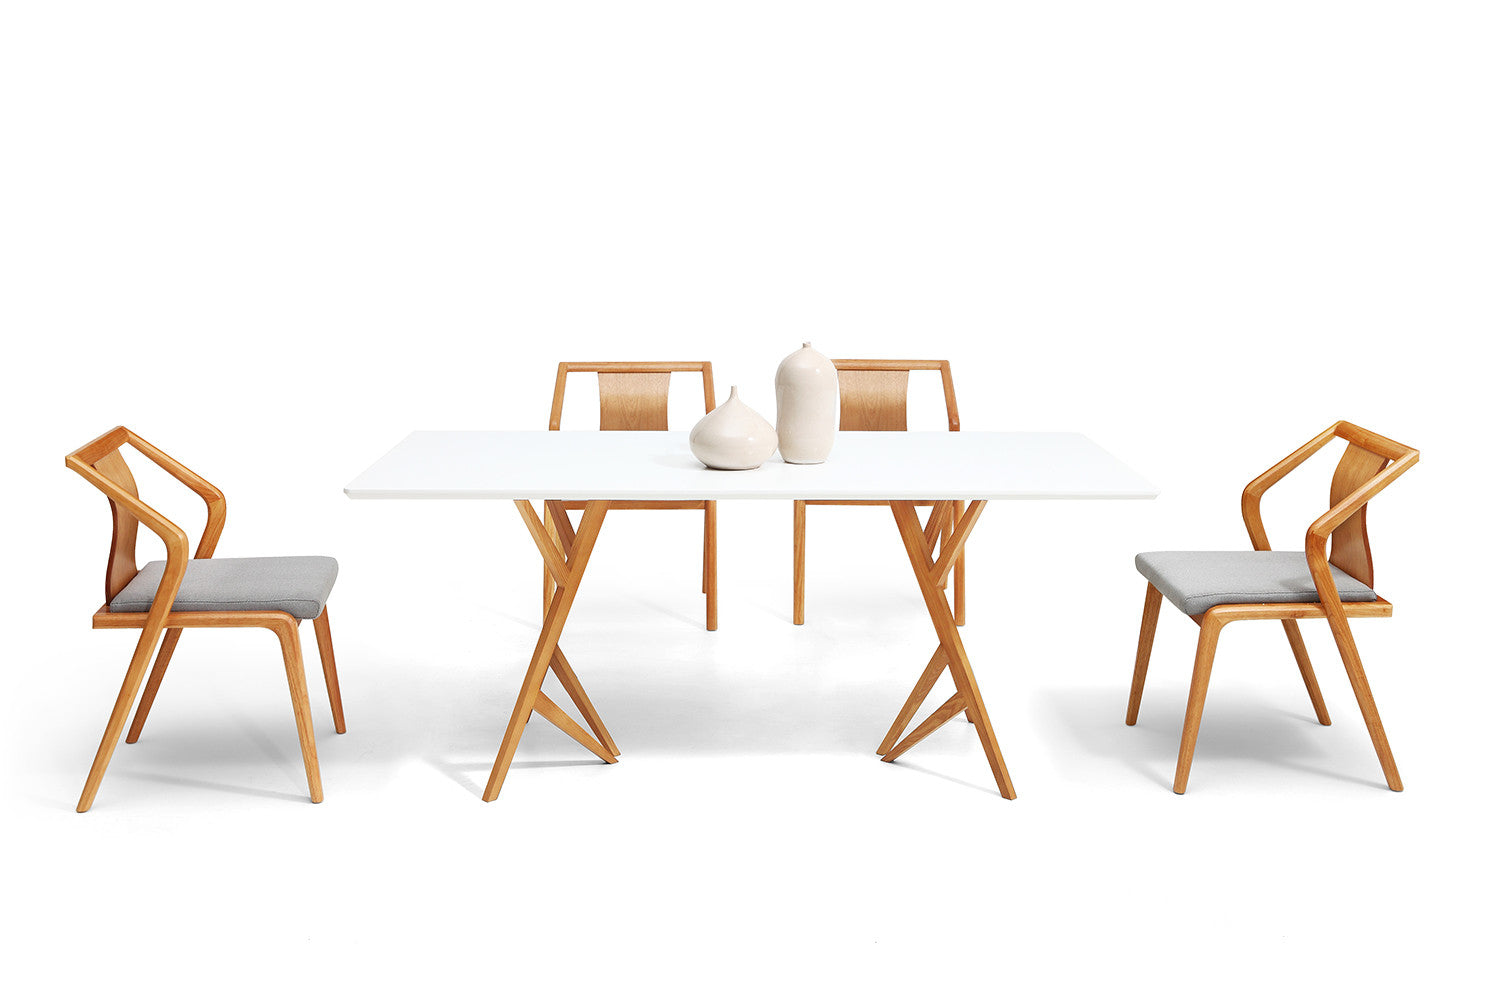 Table de salle manger design scandinave vispa dewarens for Design salle a manger